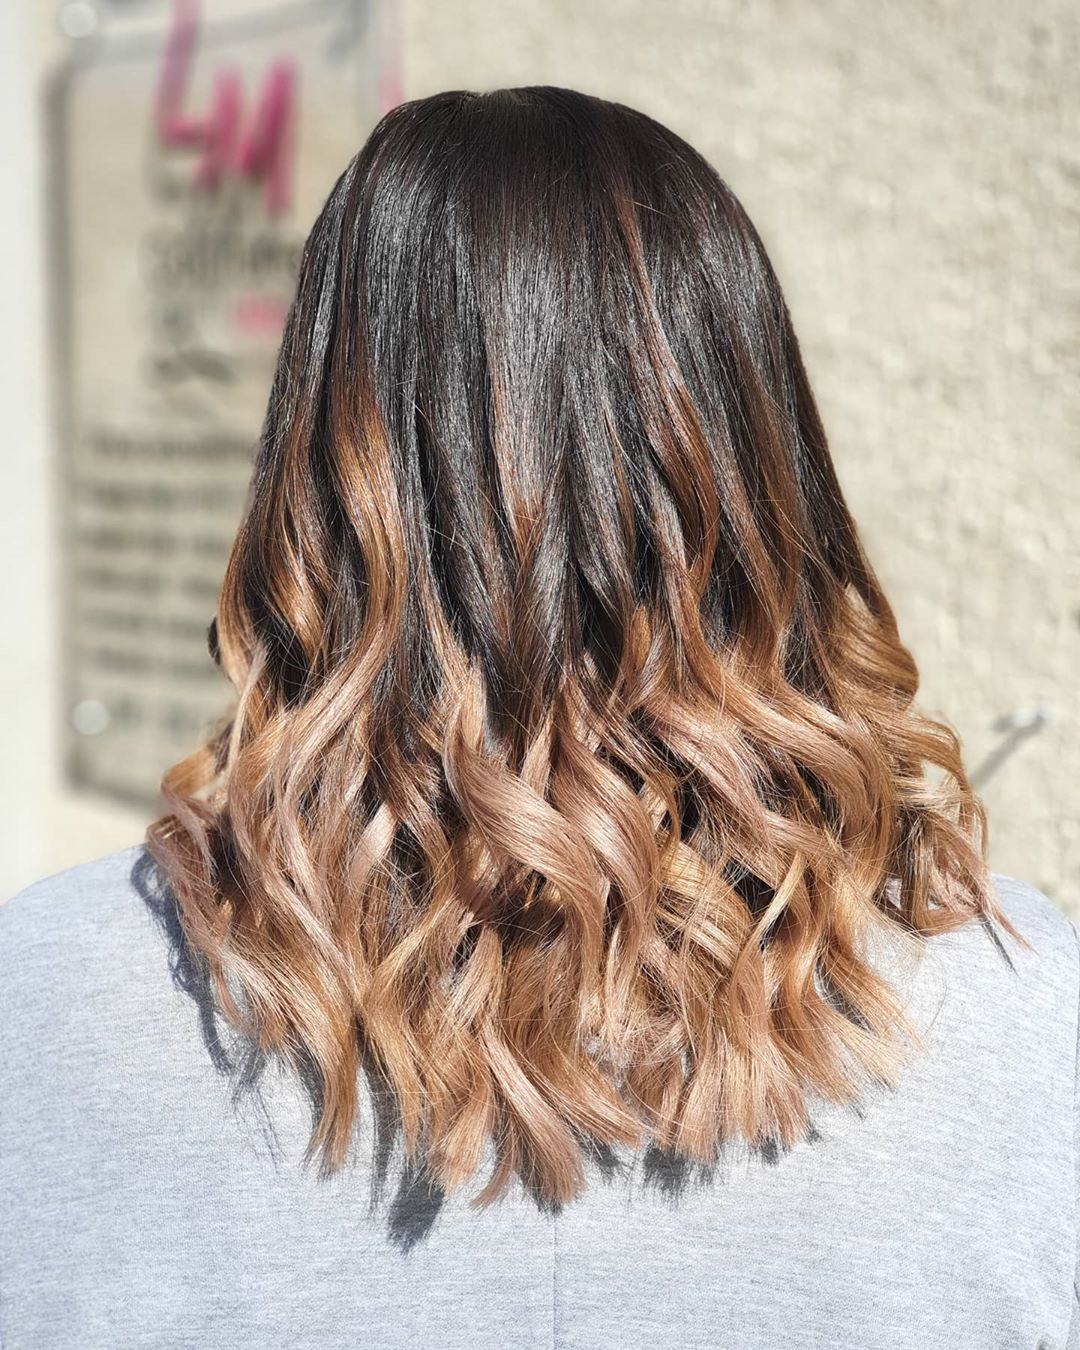 50 Best Hair Color Ideas Trends To Look Out For In 2021 According To Stylists In 2020 Hair Color For Morena Hair Color For Morena Skin Brown Hair Balayage